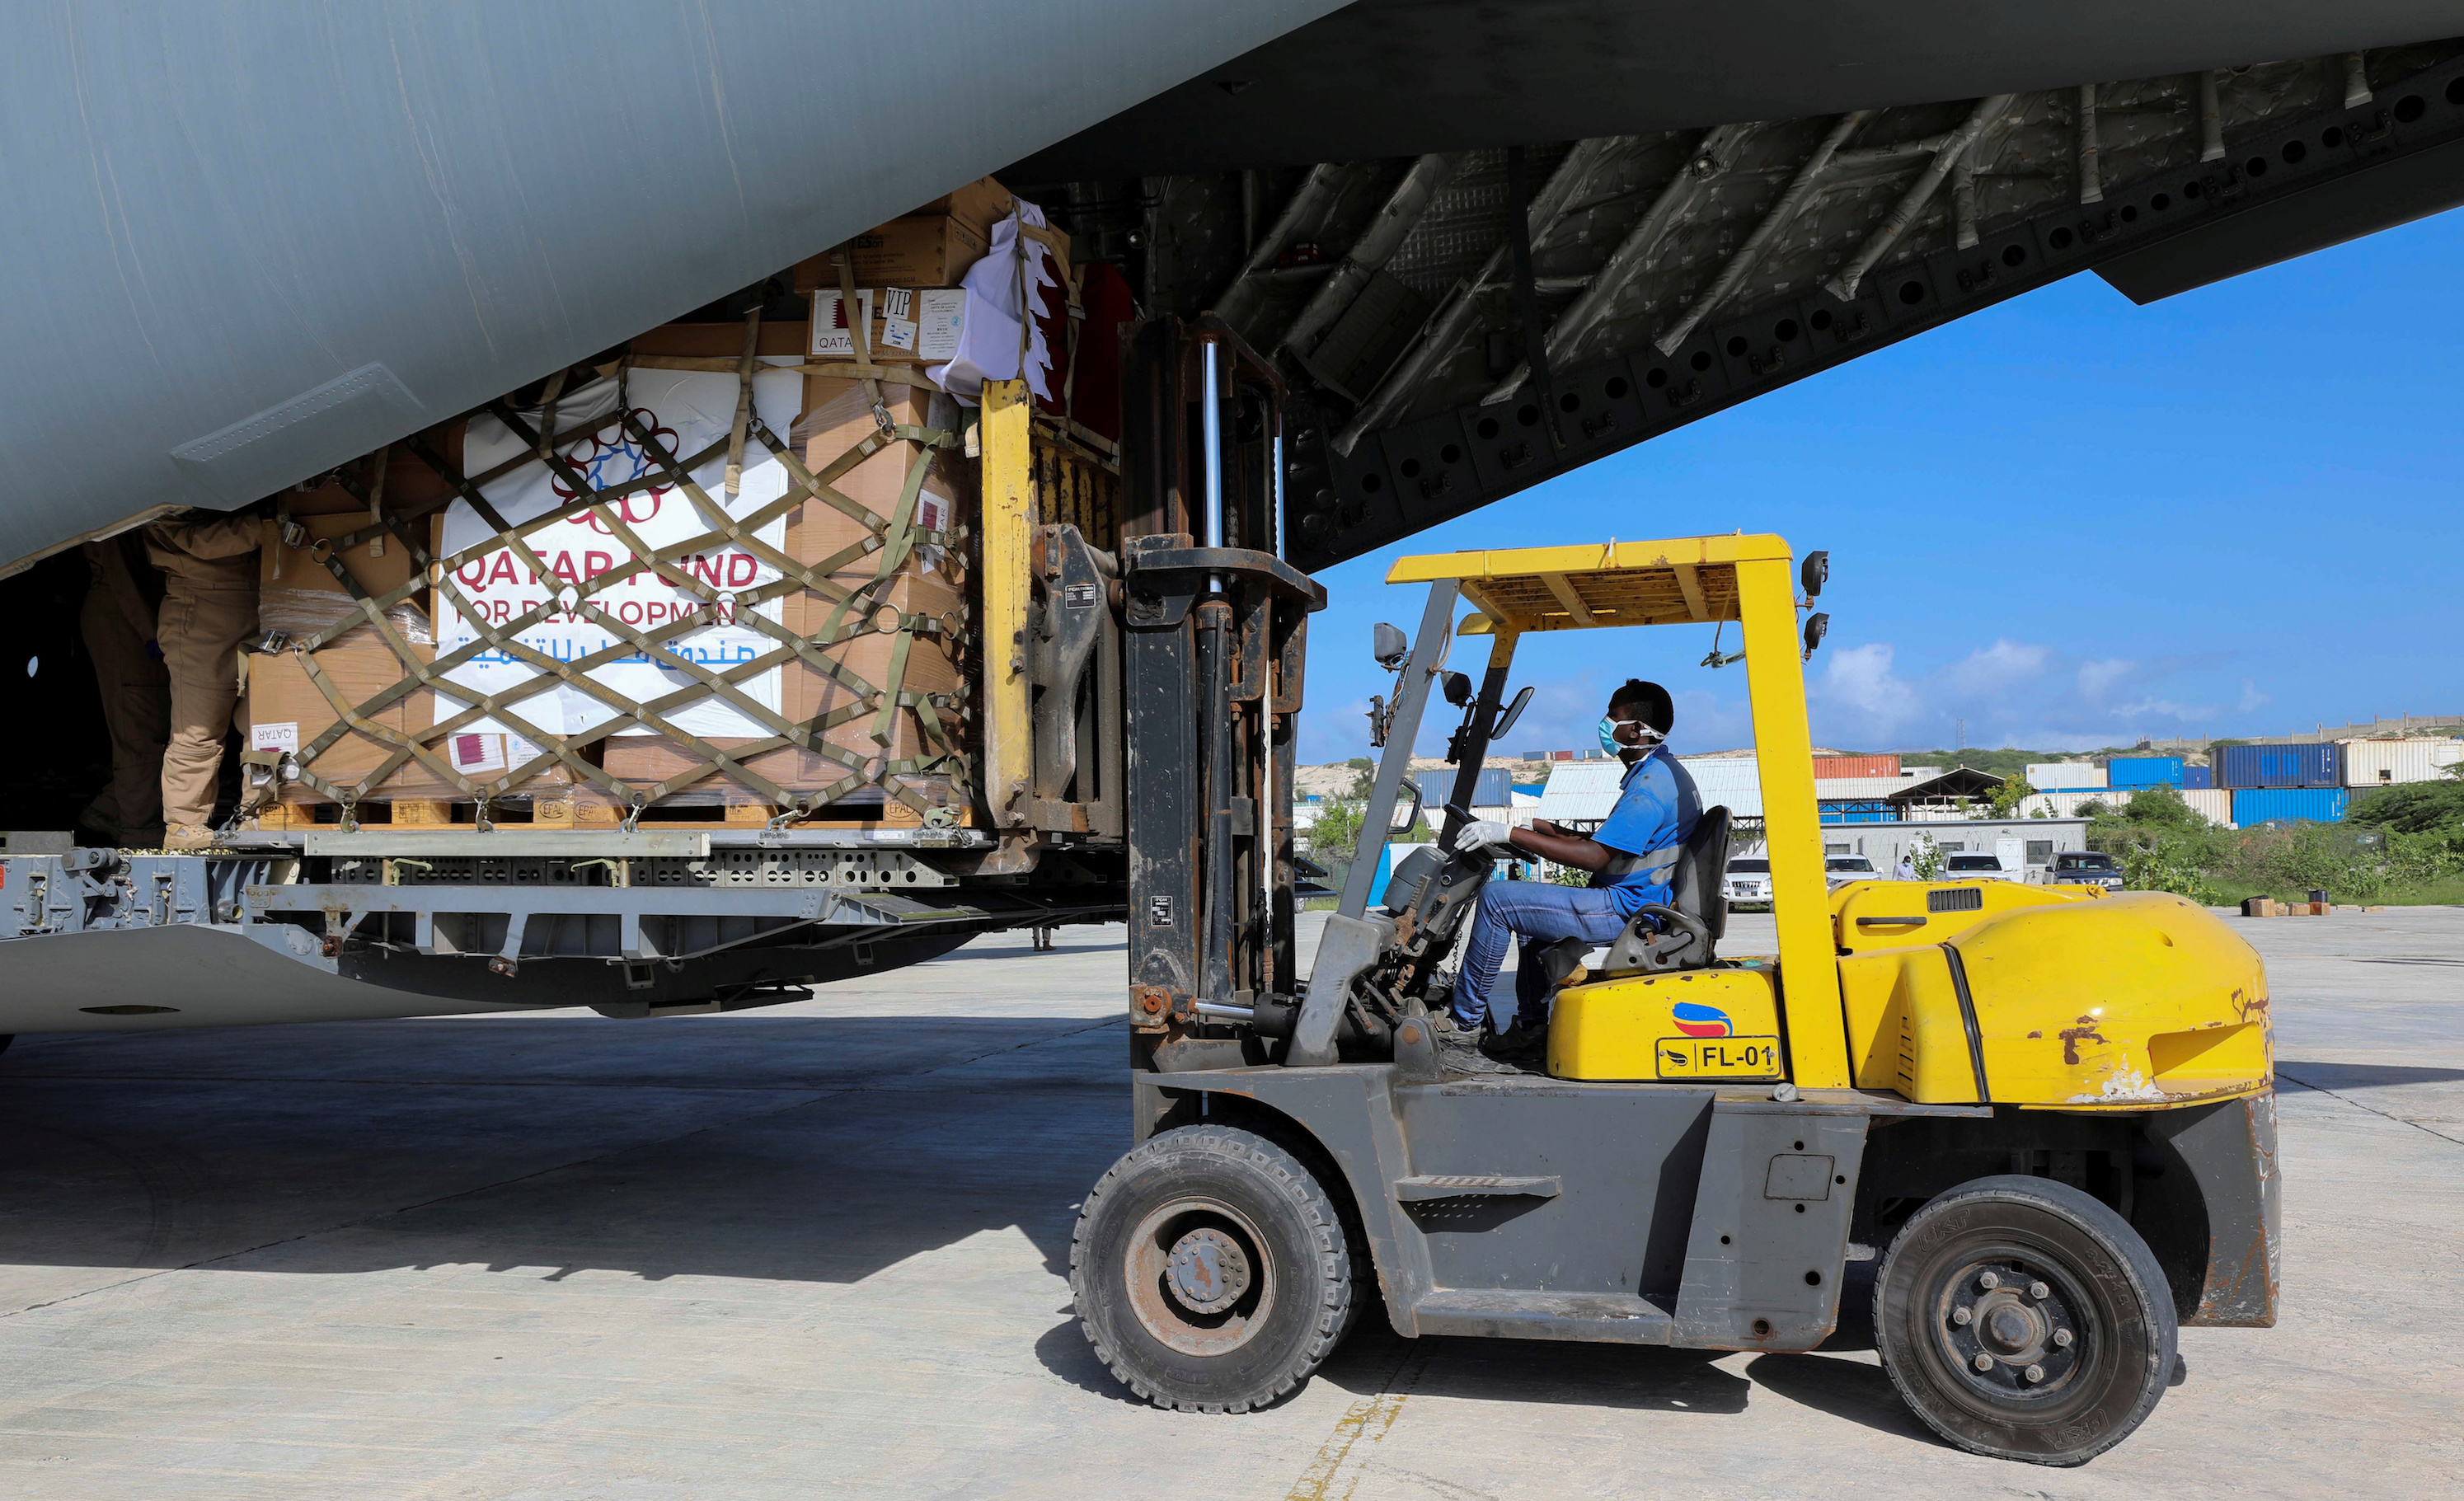 A Somali worker unloads medical equipment from a Qatar military plane to help in containing the spread of the coronavirus disease (COVID-19) outbreak, at the Aden Abdulle International Airport in Mogadishu, Somalia May 16, 2020. REUTERS/Feisal Omar